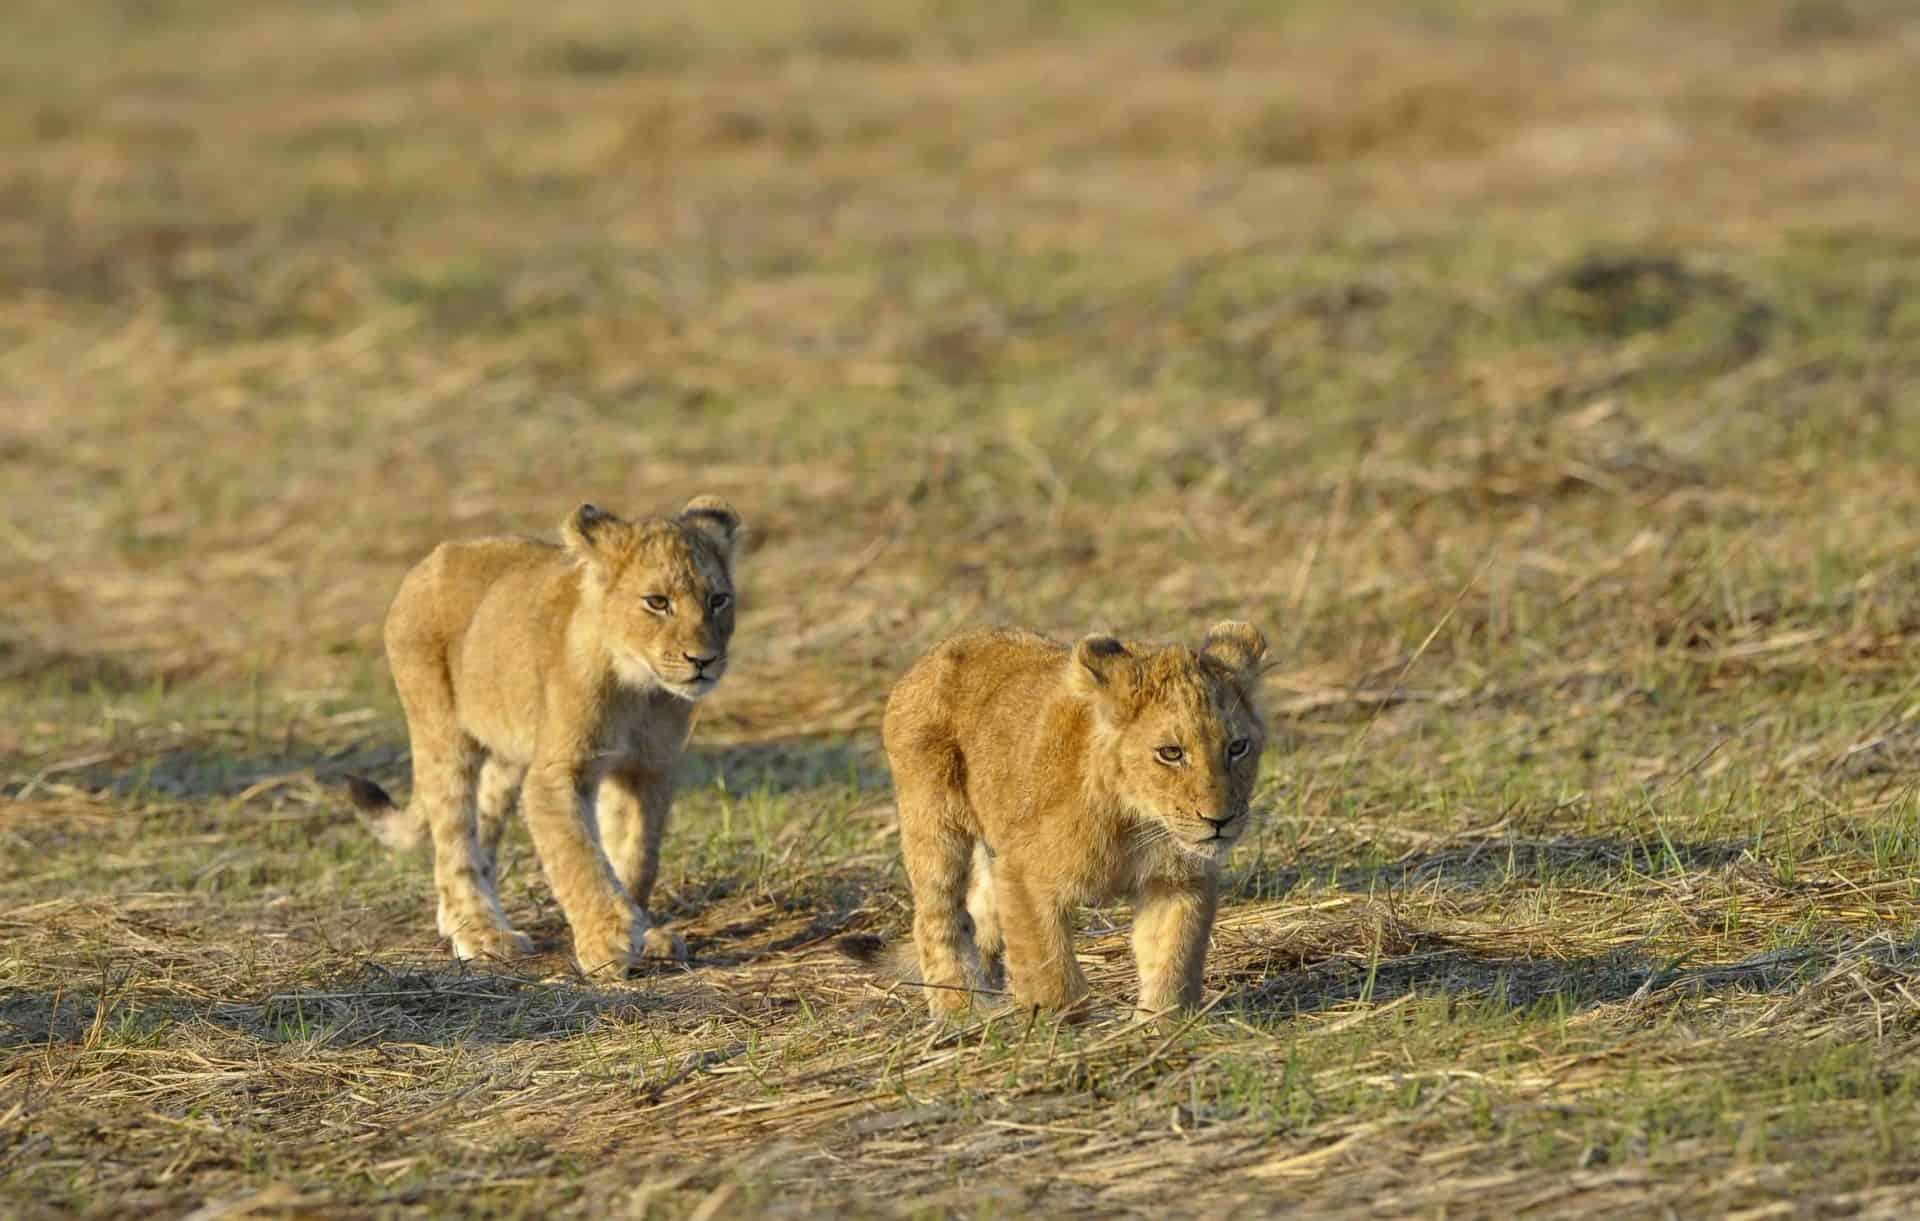 Two young lions. Two small young lions go on savanna. A yellow grass. The morning sun.